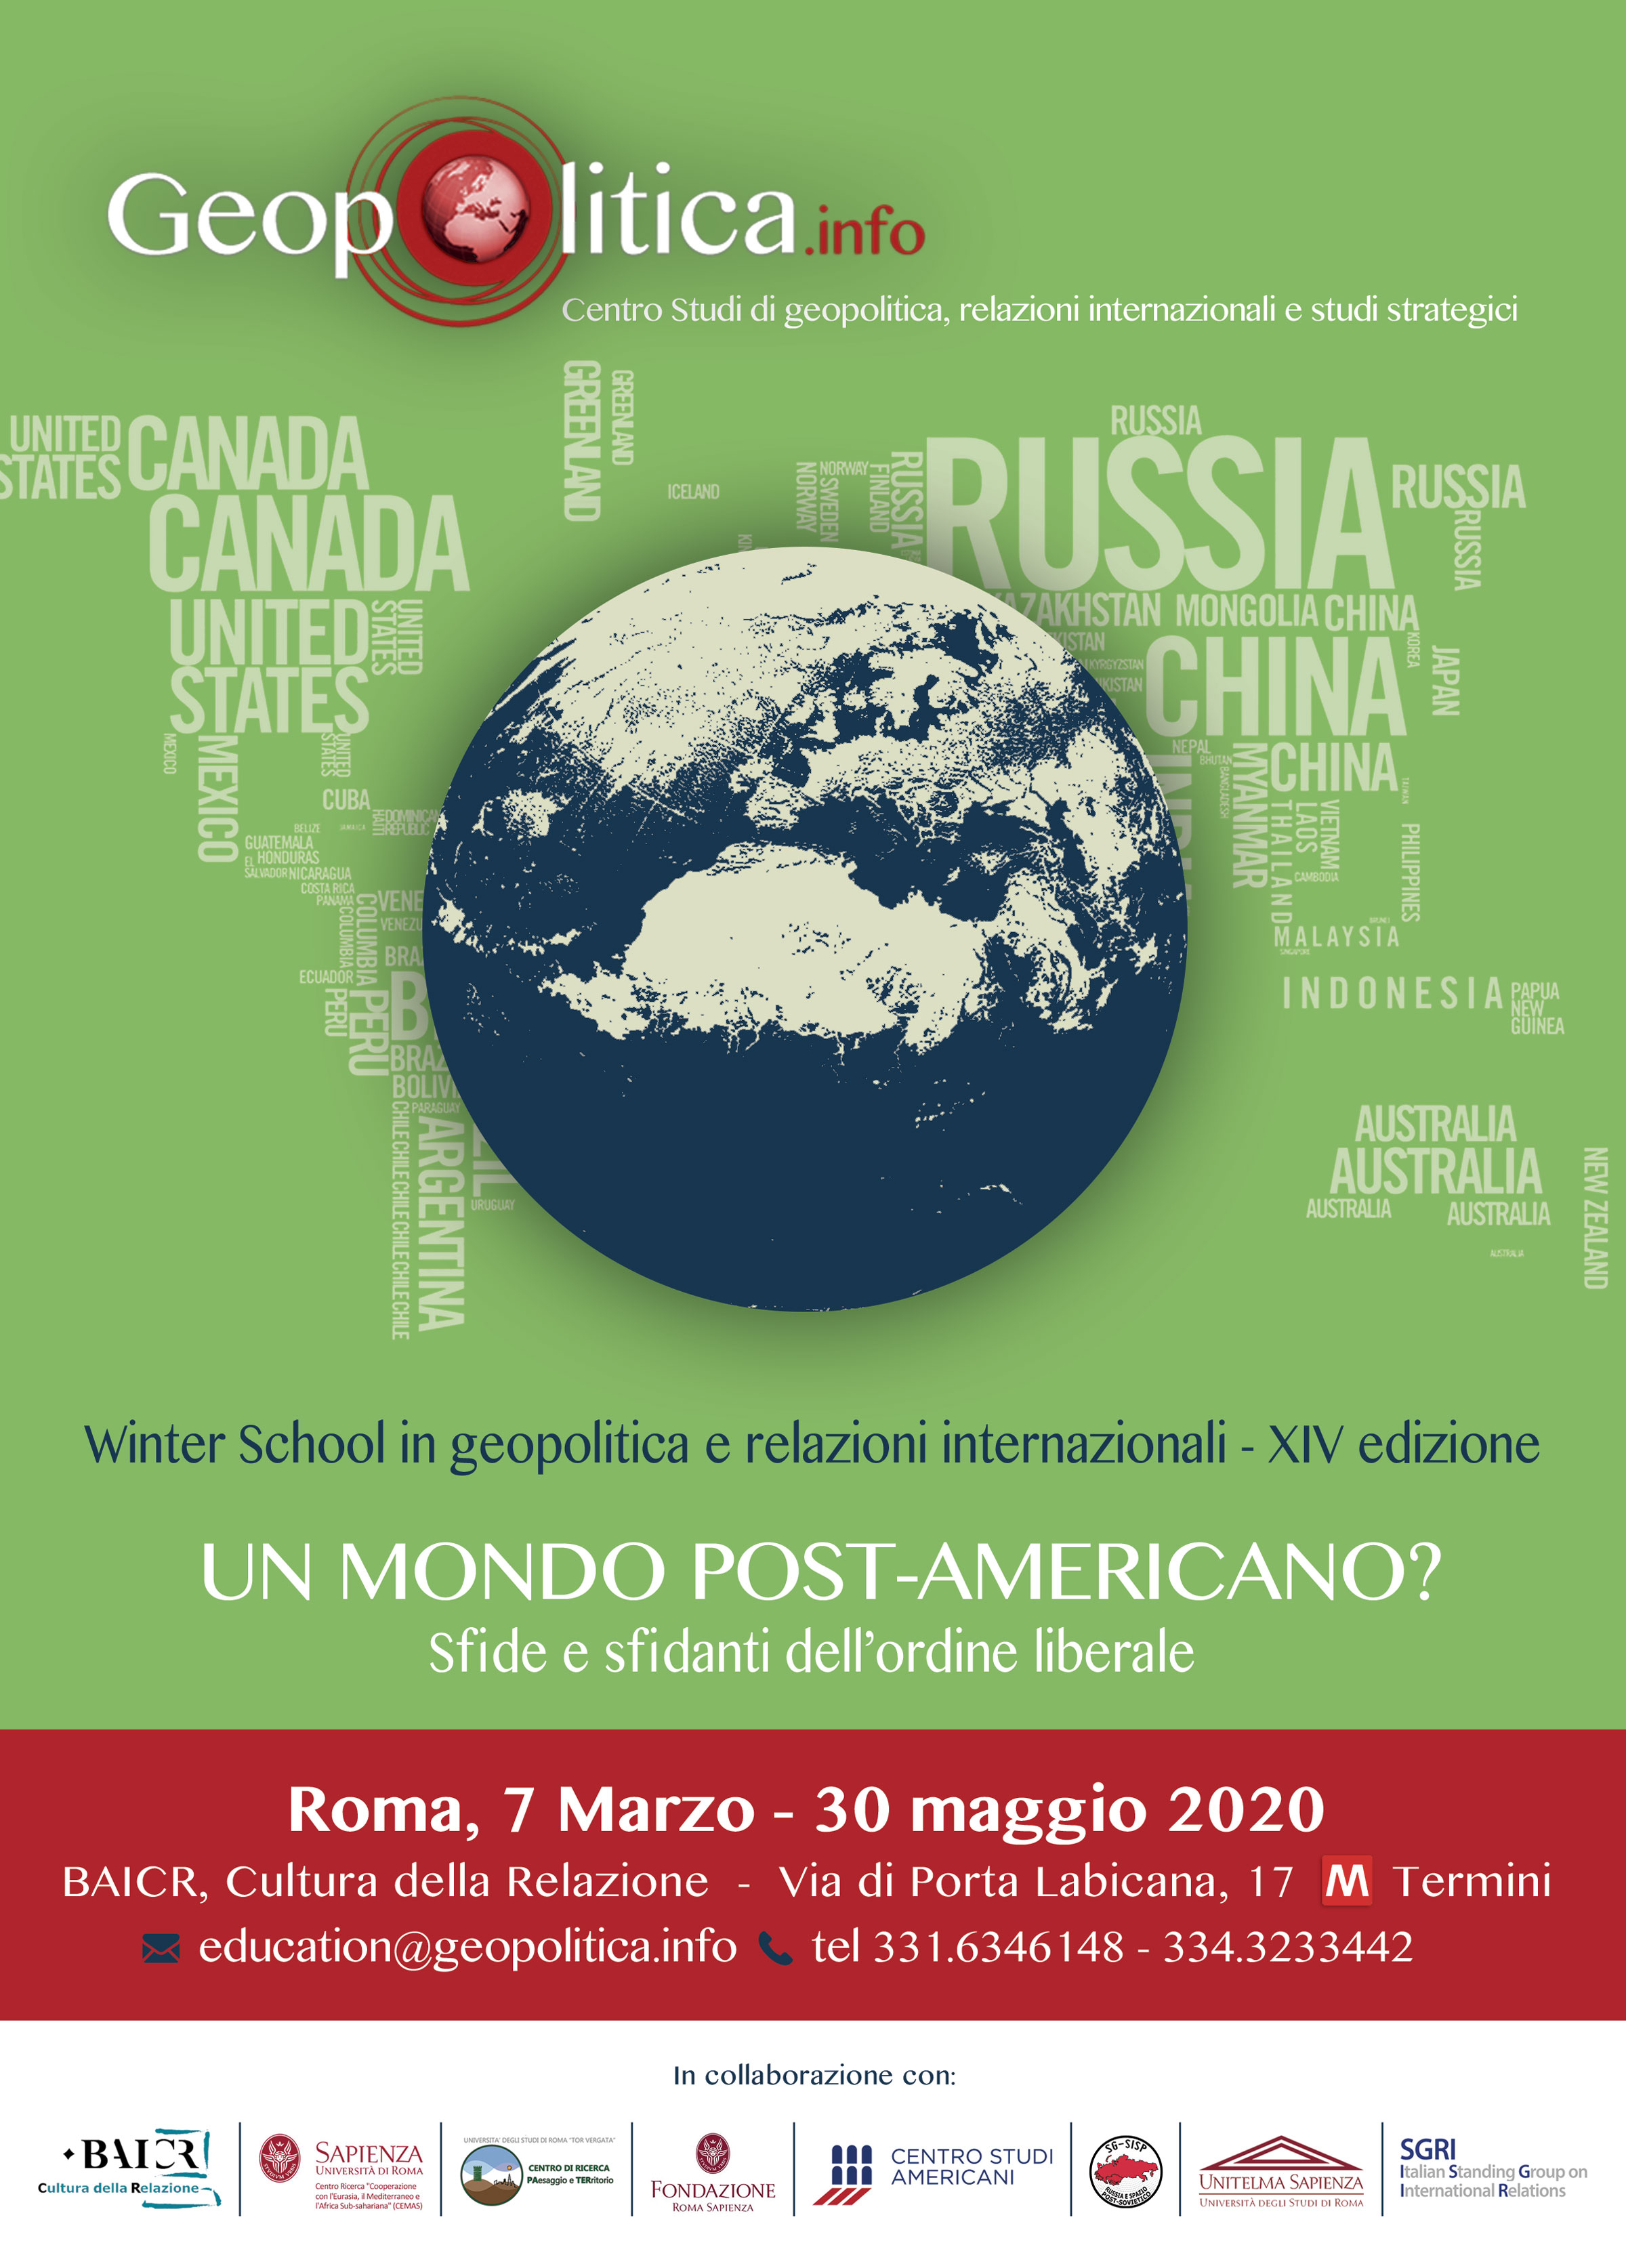 XIV Winter School  - Un mondo post-americano? Sfide e sfidanti dell'ordine liberale